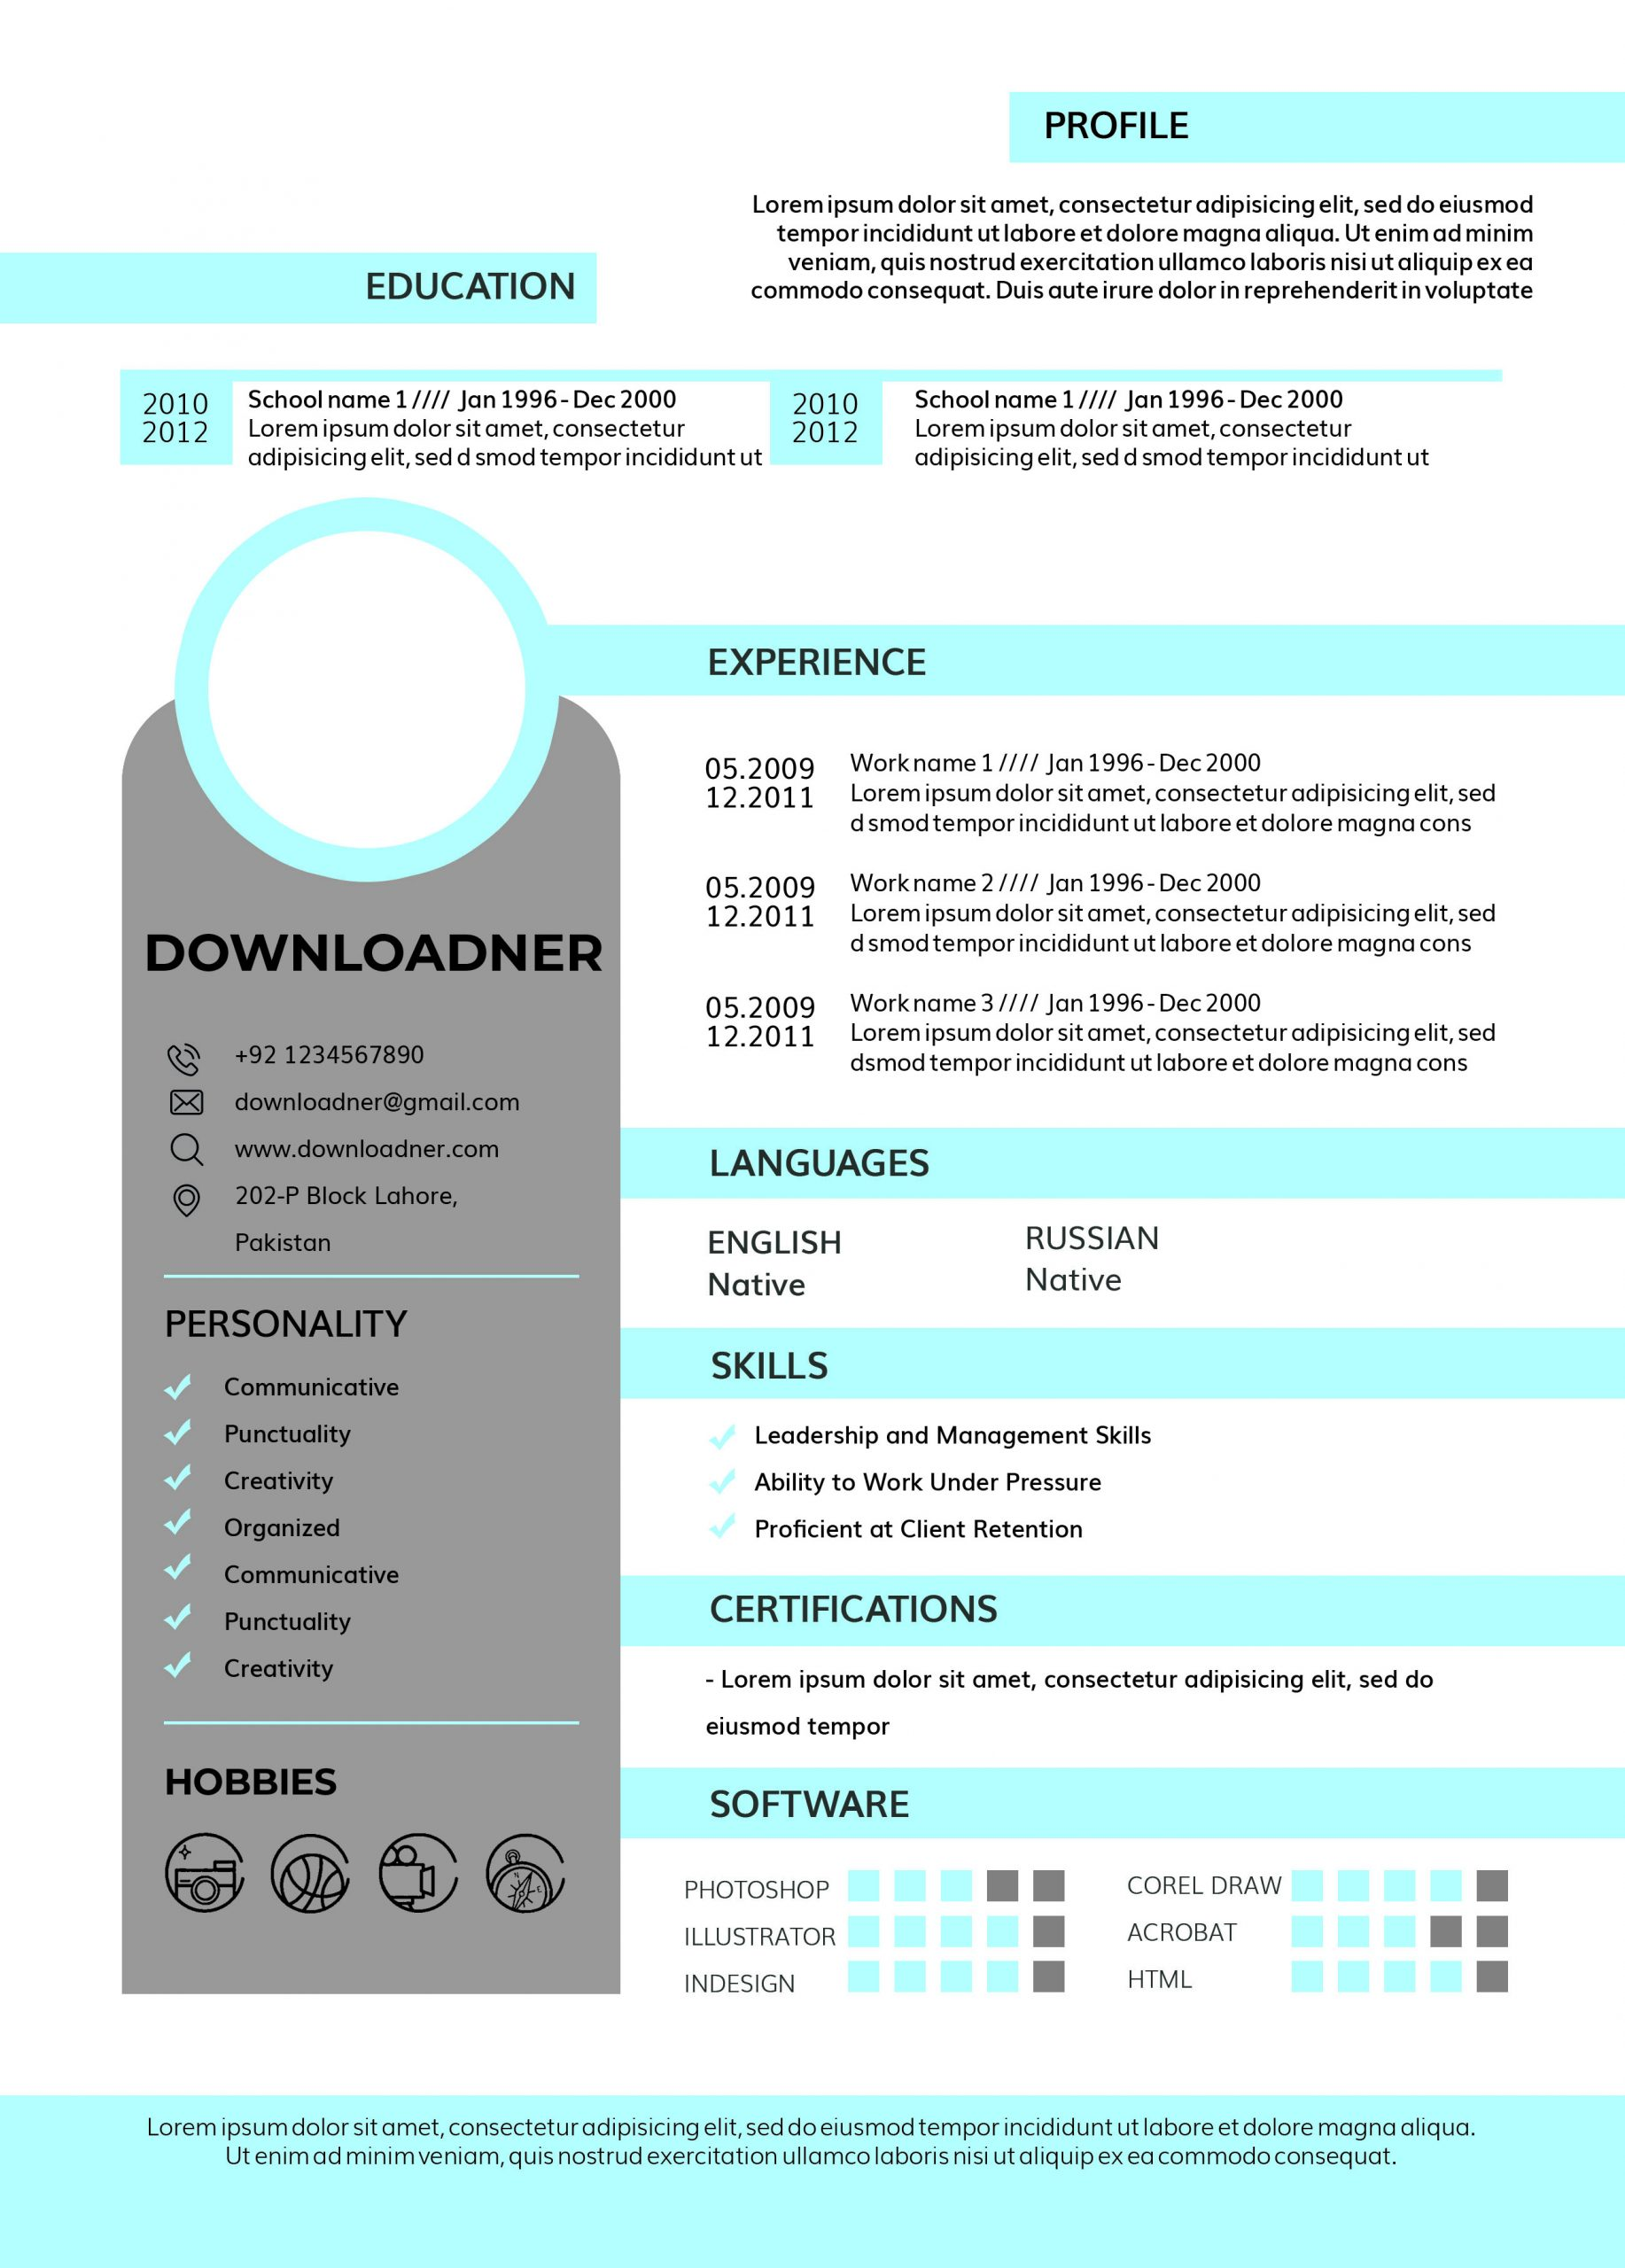 White and Blue Resume and CV Photoshop PSD